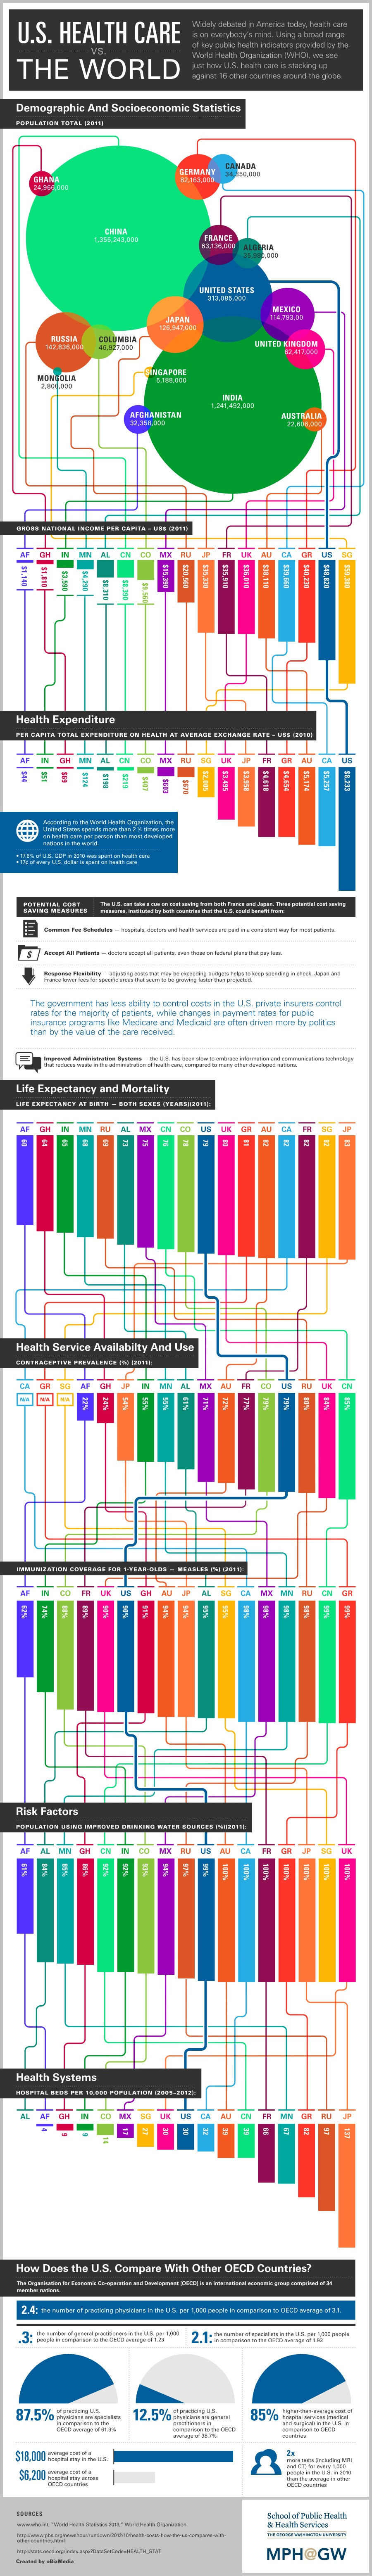 How the U.S. Health-Care System Stacks Up Against the Rest of the World (Infographic)